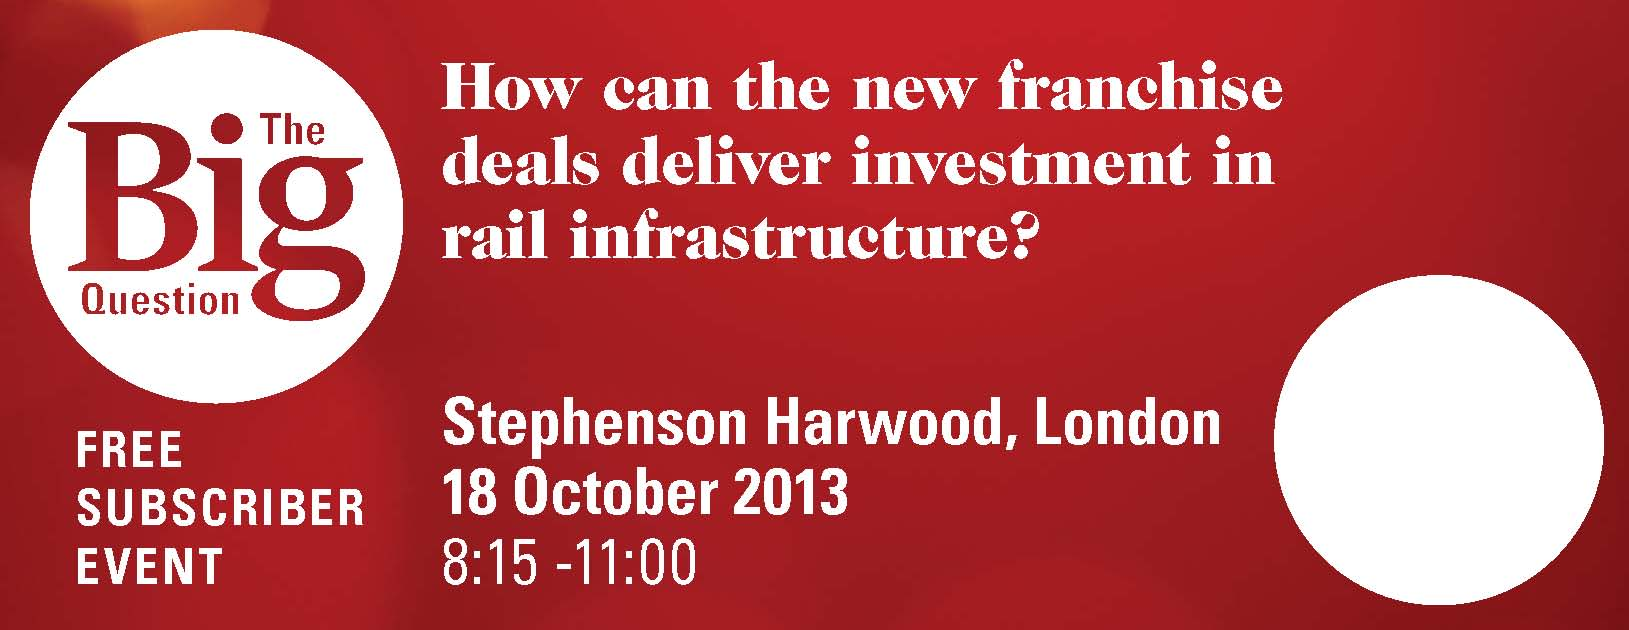 How can the new franchise deals deliver investment in rail infrastructure?